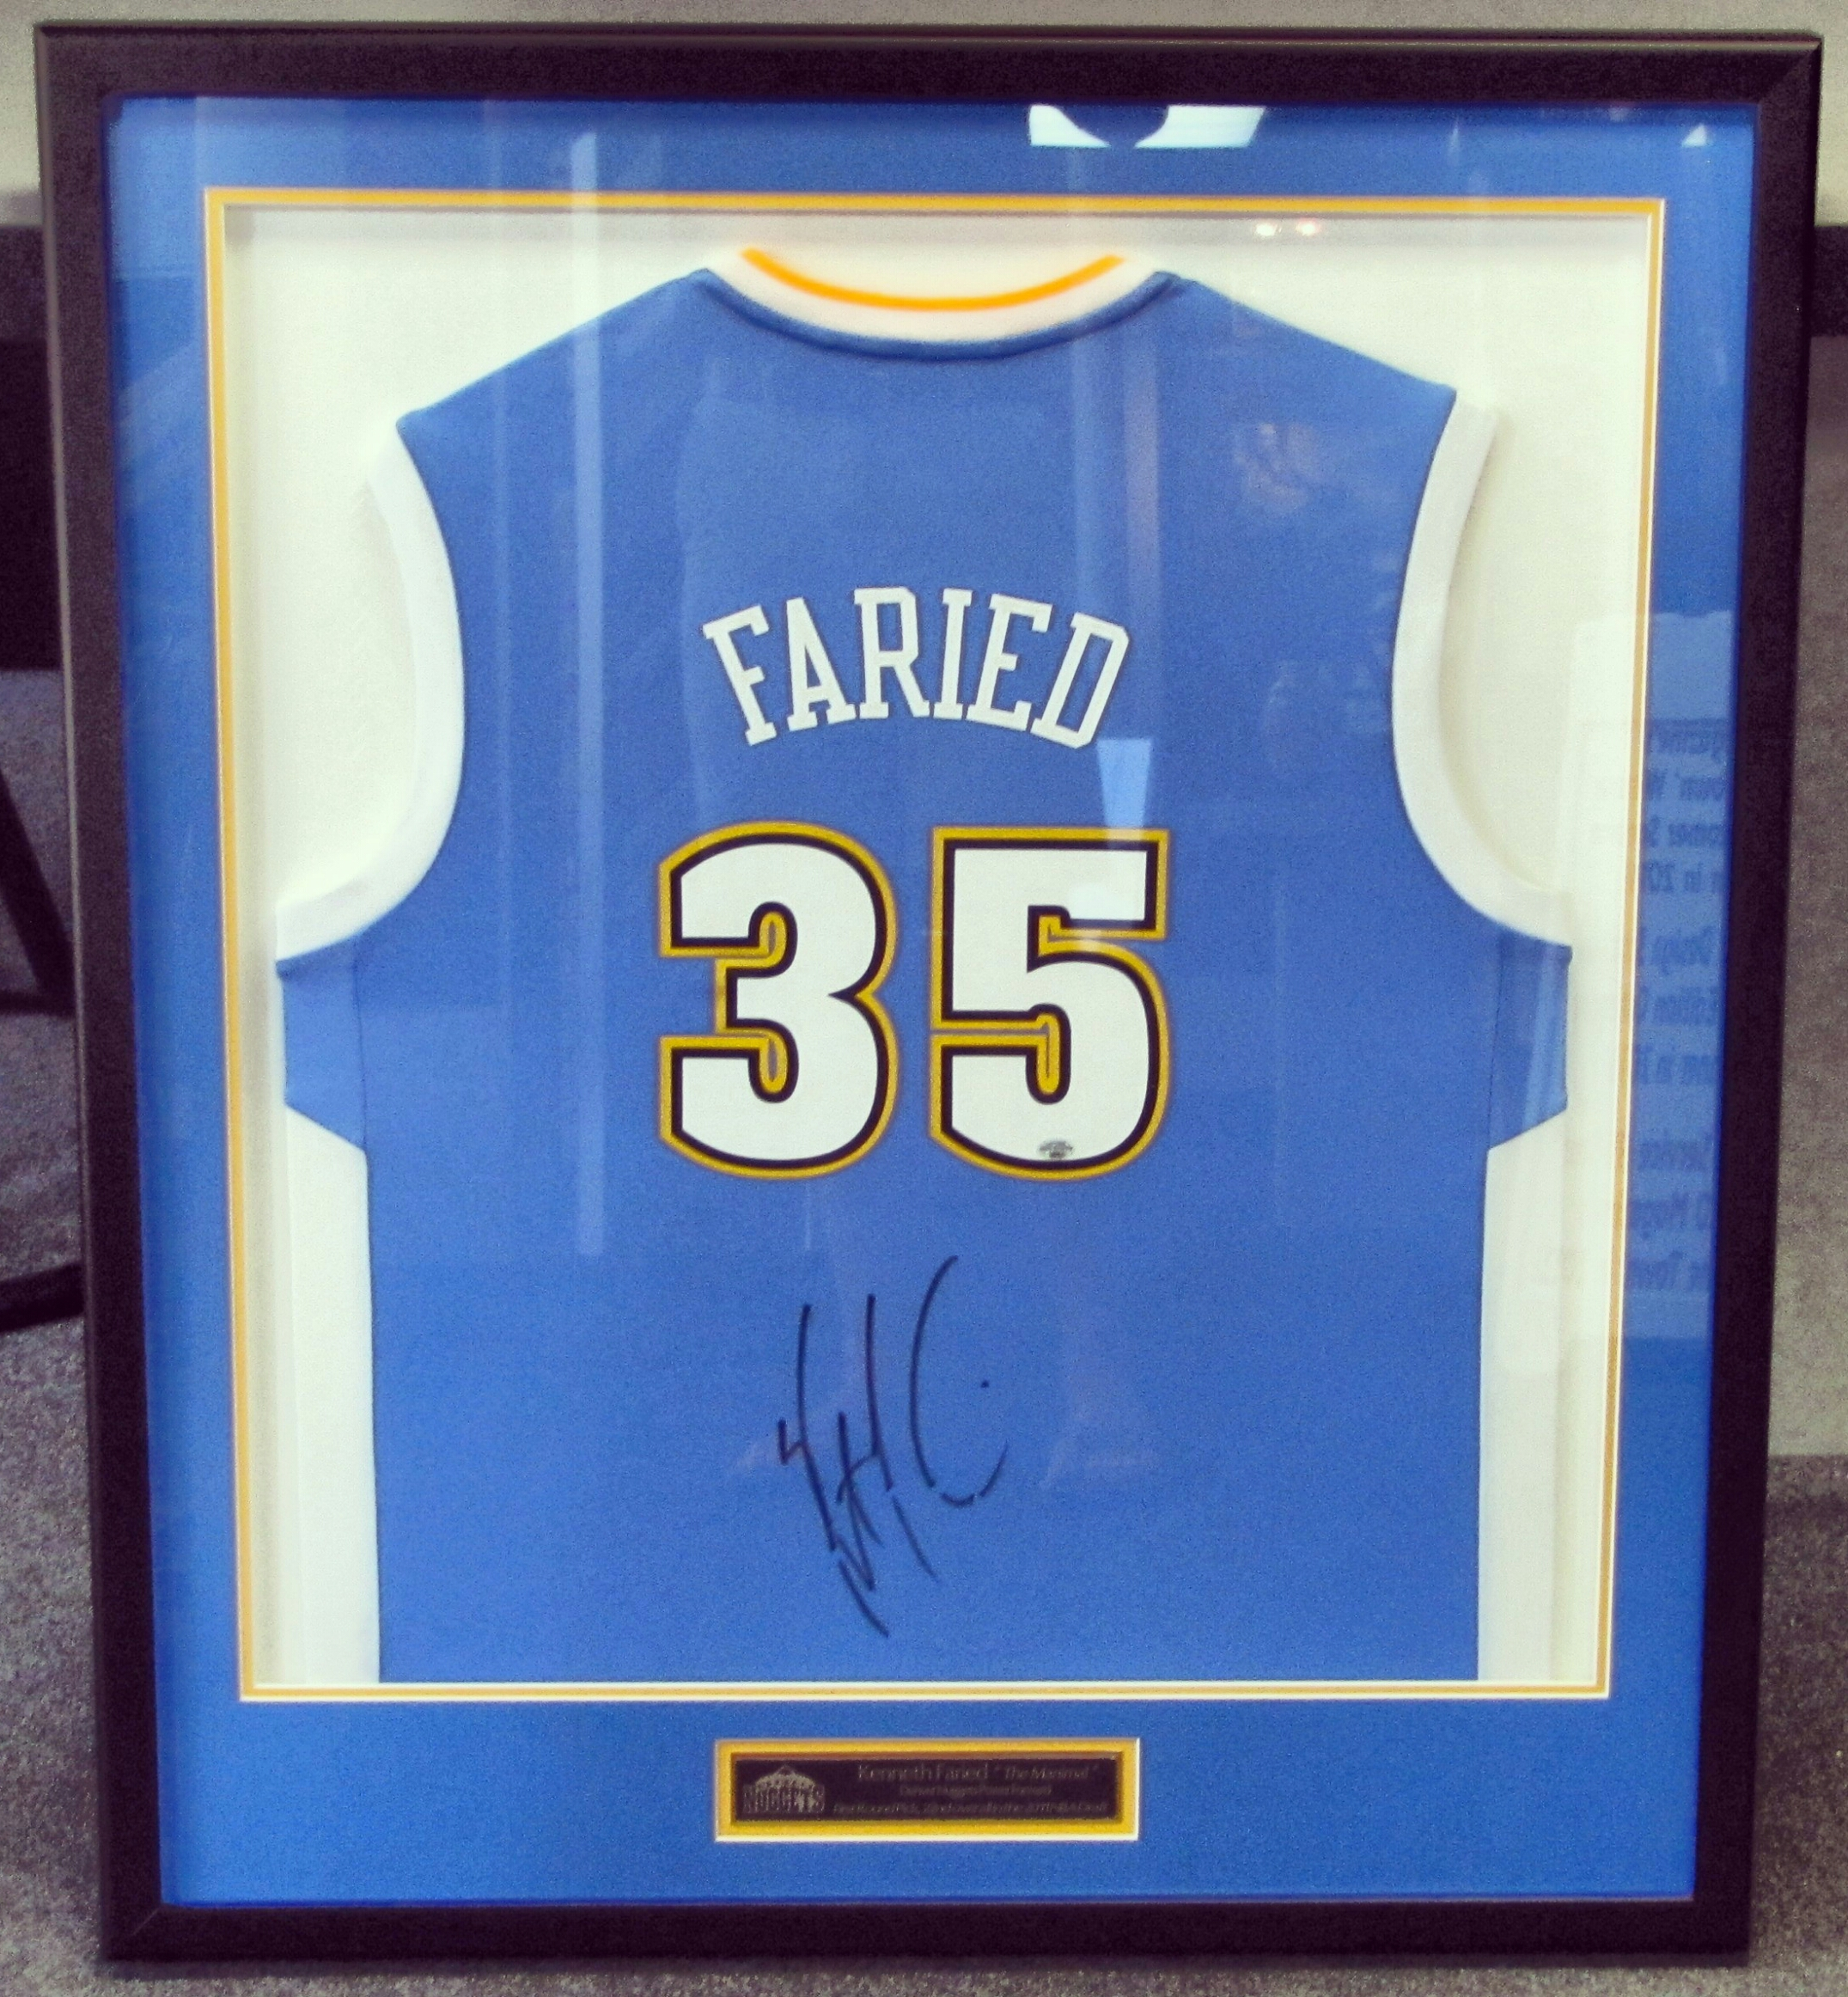 Jersey framing denver nuggets kenneth faried jersey fastframe jersey framing denver nuggets kenneth faried jersey jeuxipadfo Gallery